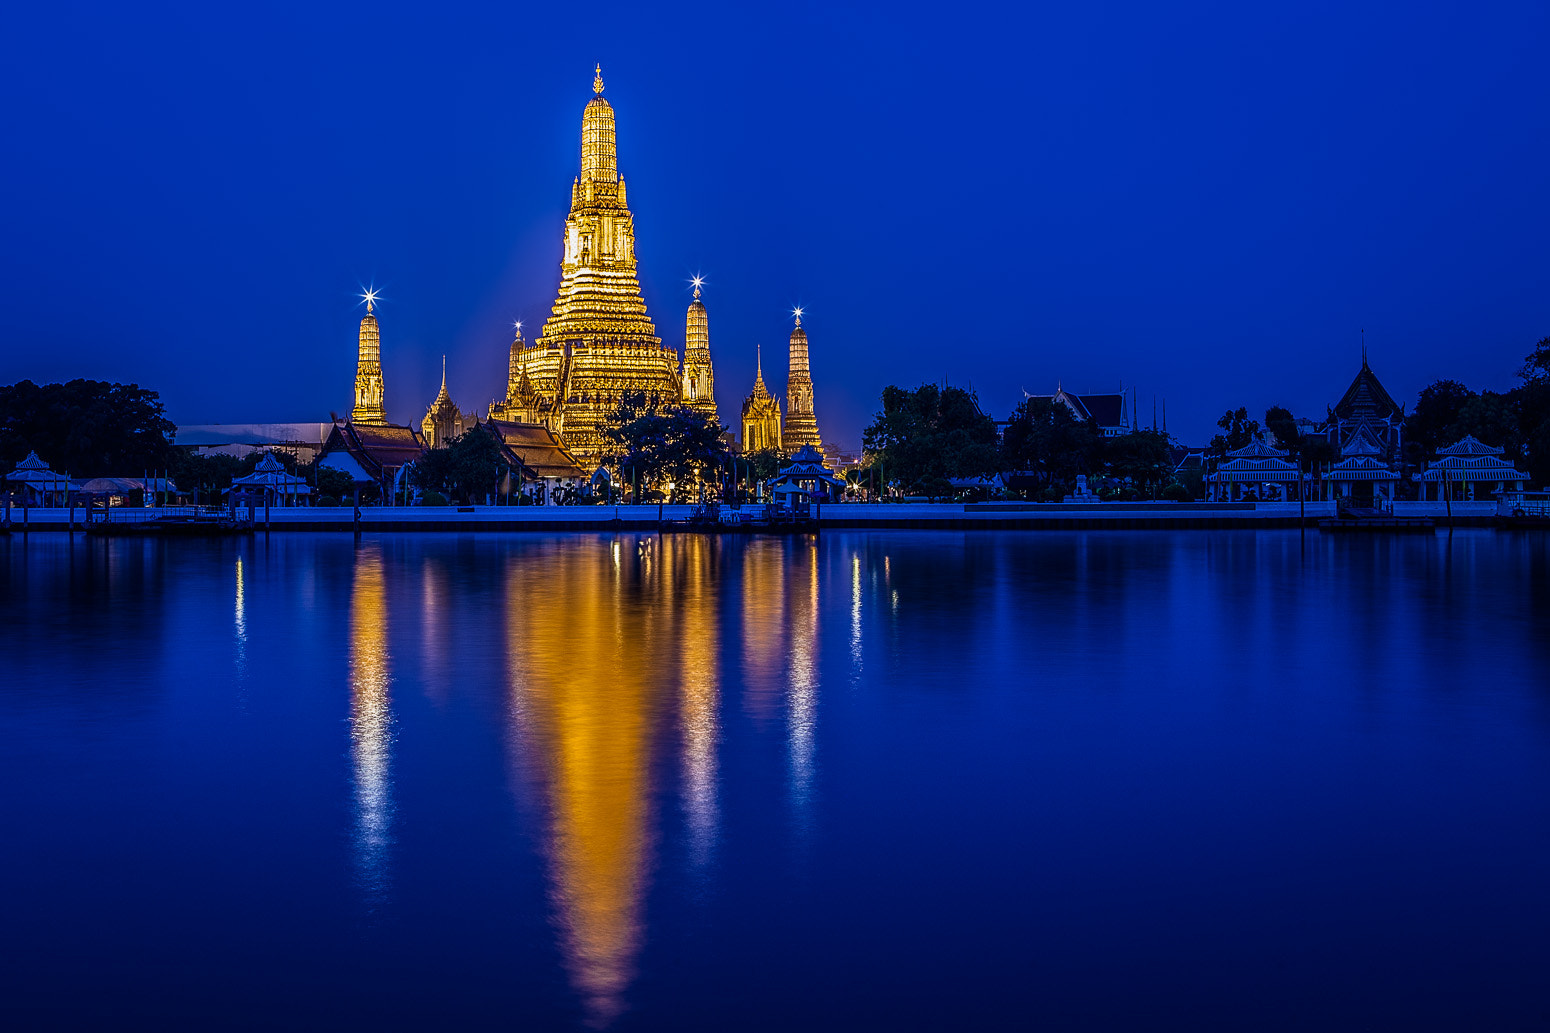 Photograph The Blue Hour by Giscard Matar on 500px